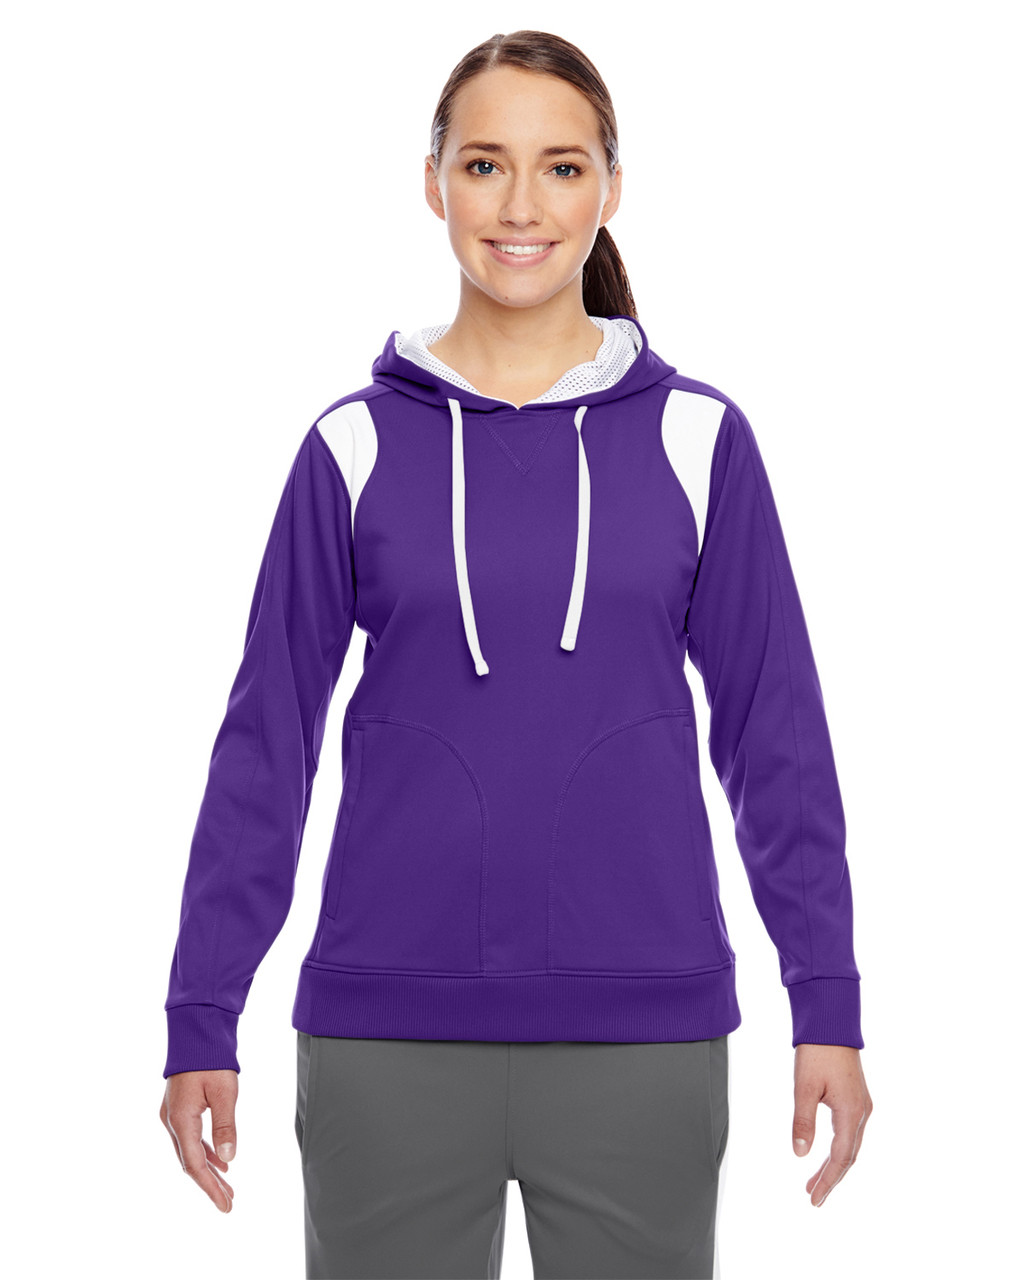 Purple/White - TT30W Team 365 Ladies' Elite Performance Hoodie | Blankclothing.ca